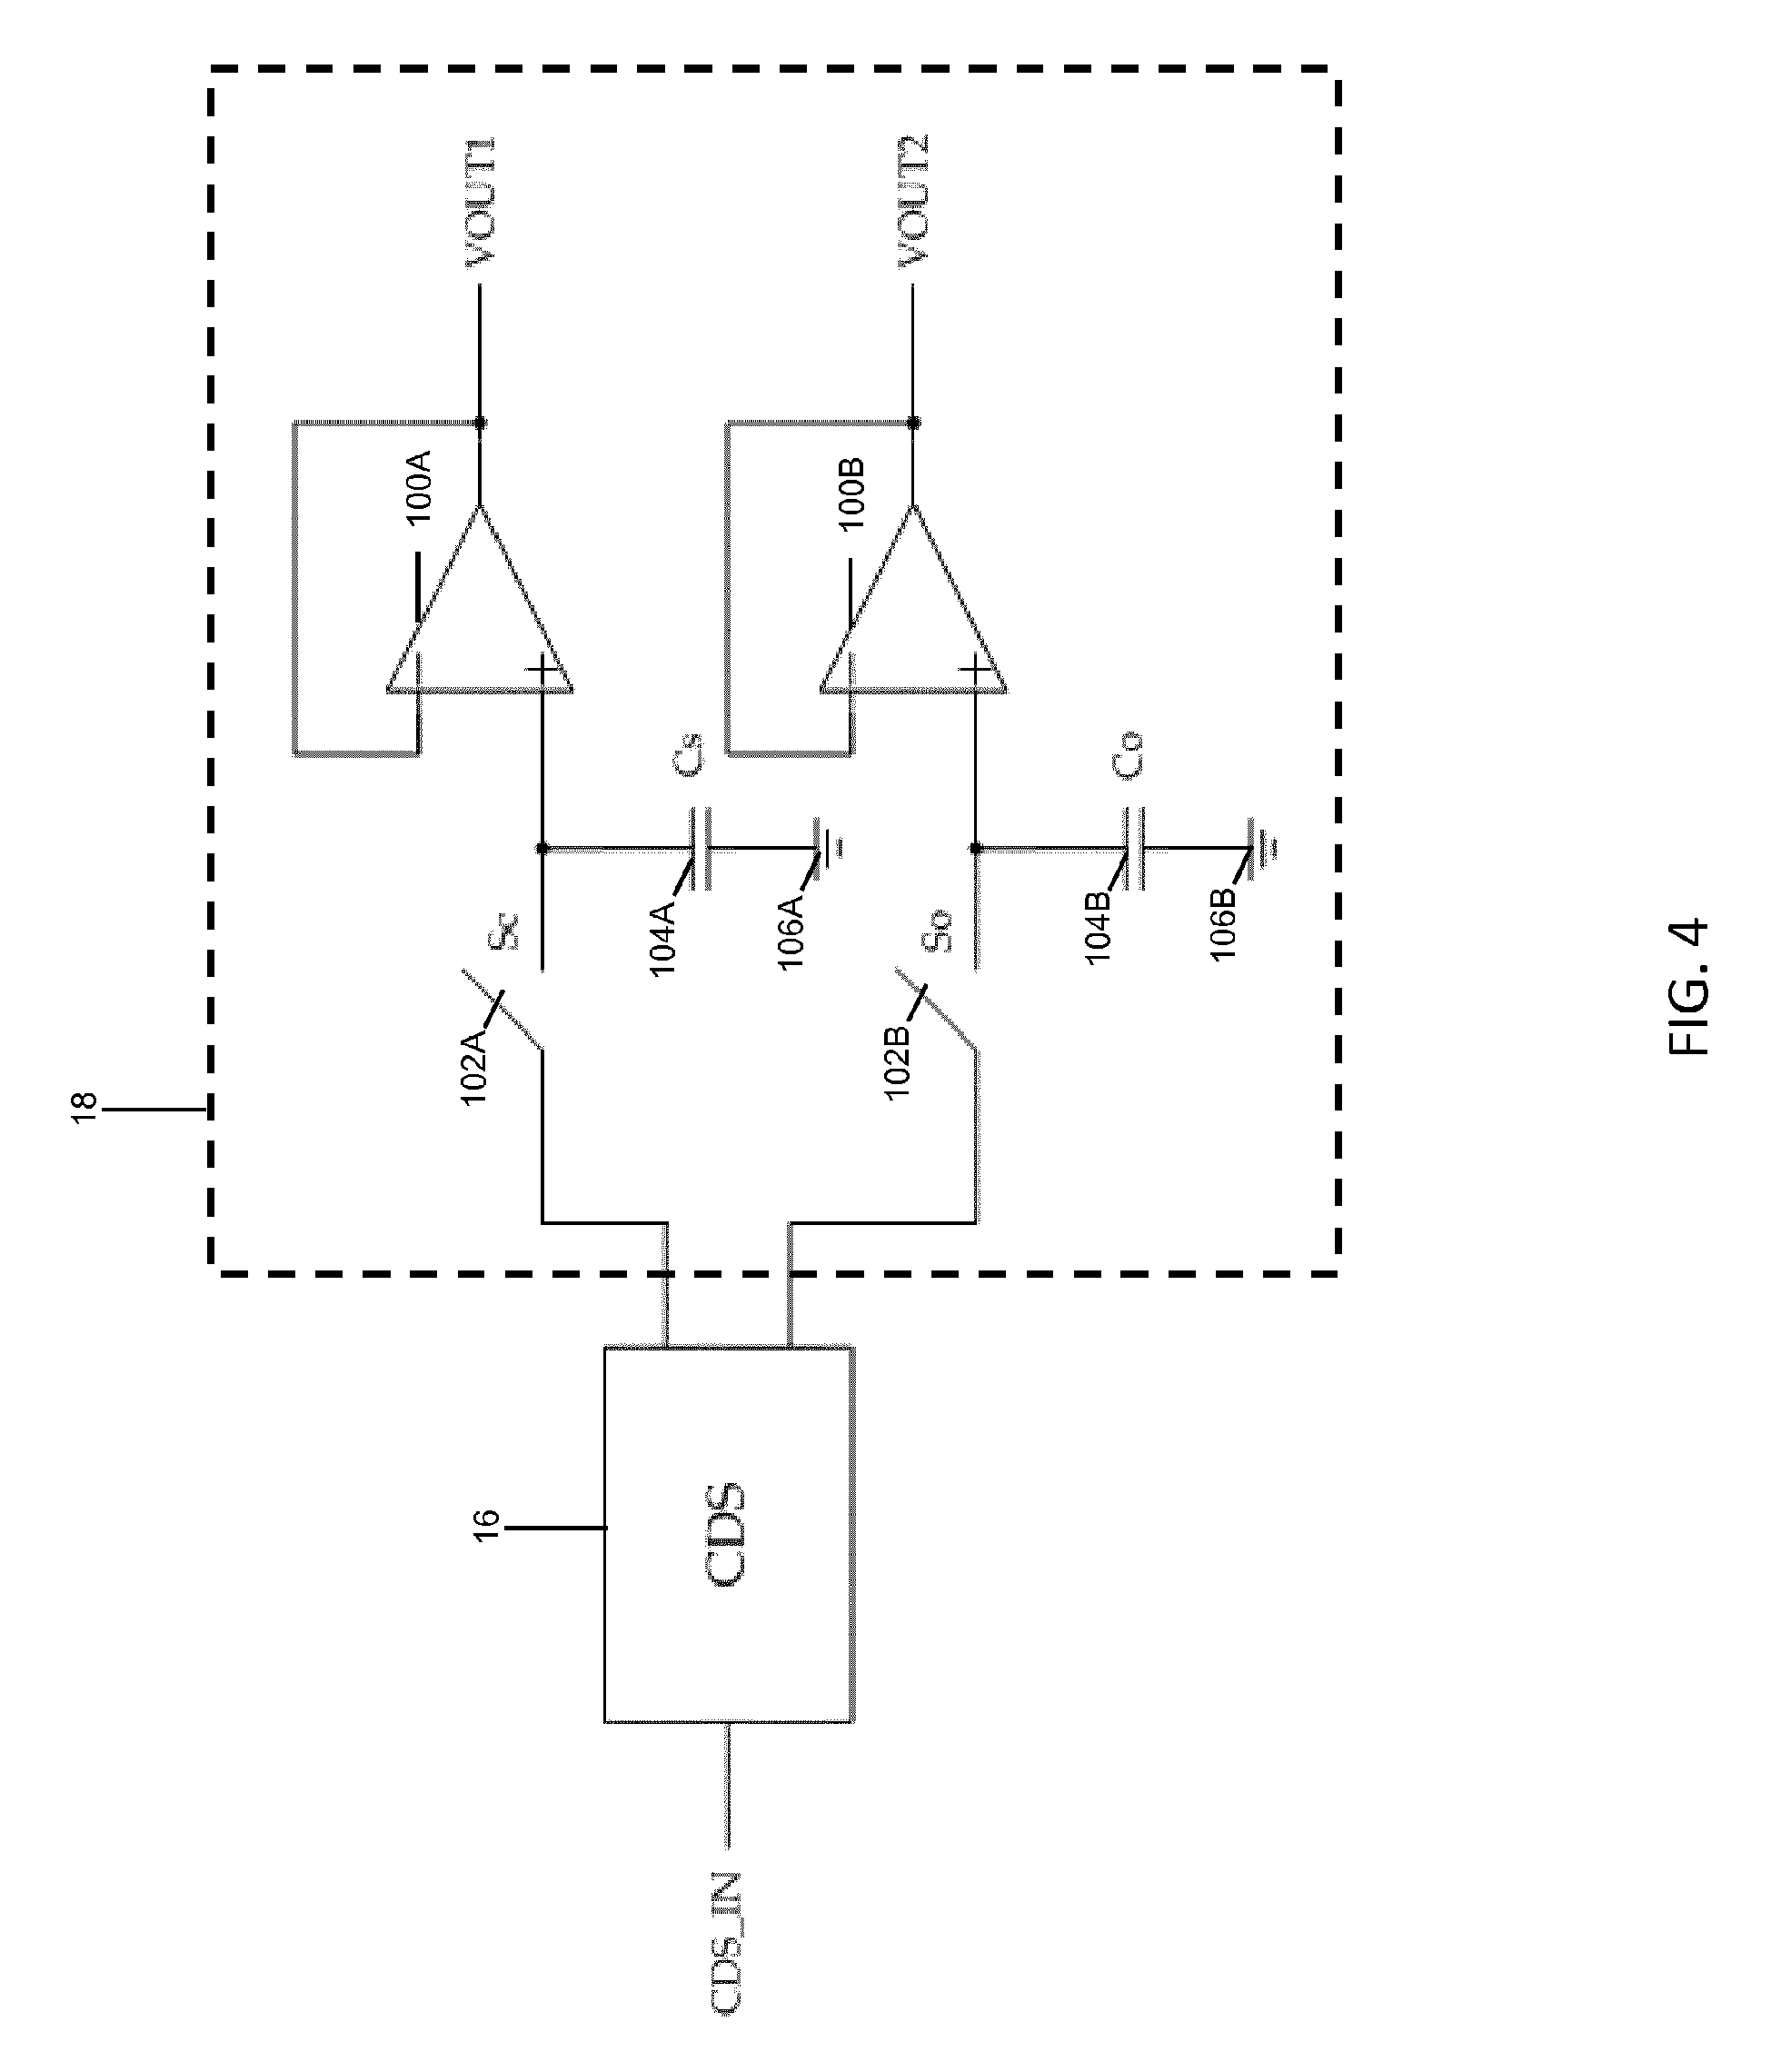 Digital Image Processing Readout Integrated Circuit Roic Having Audio Hiss Filter Drawing